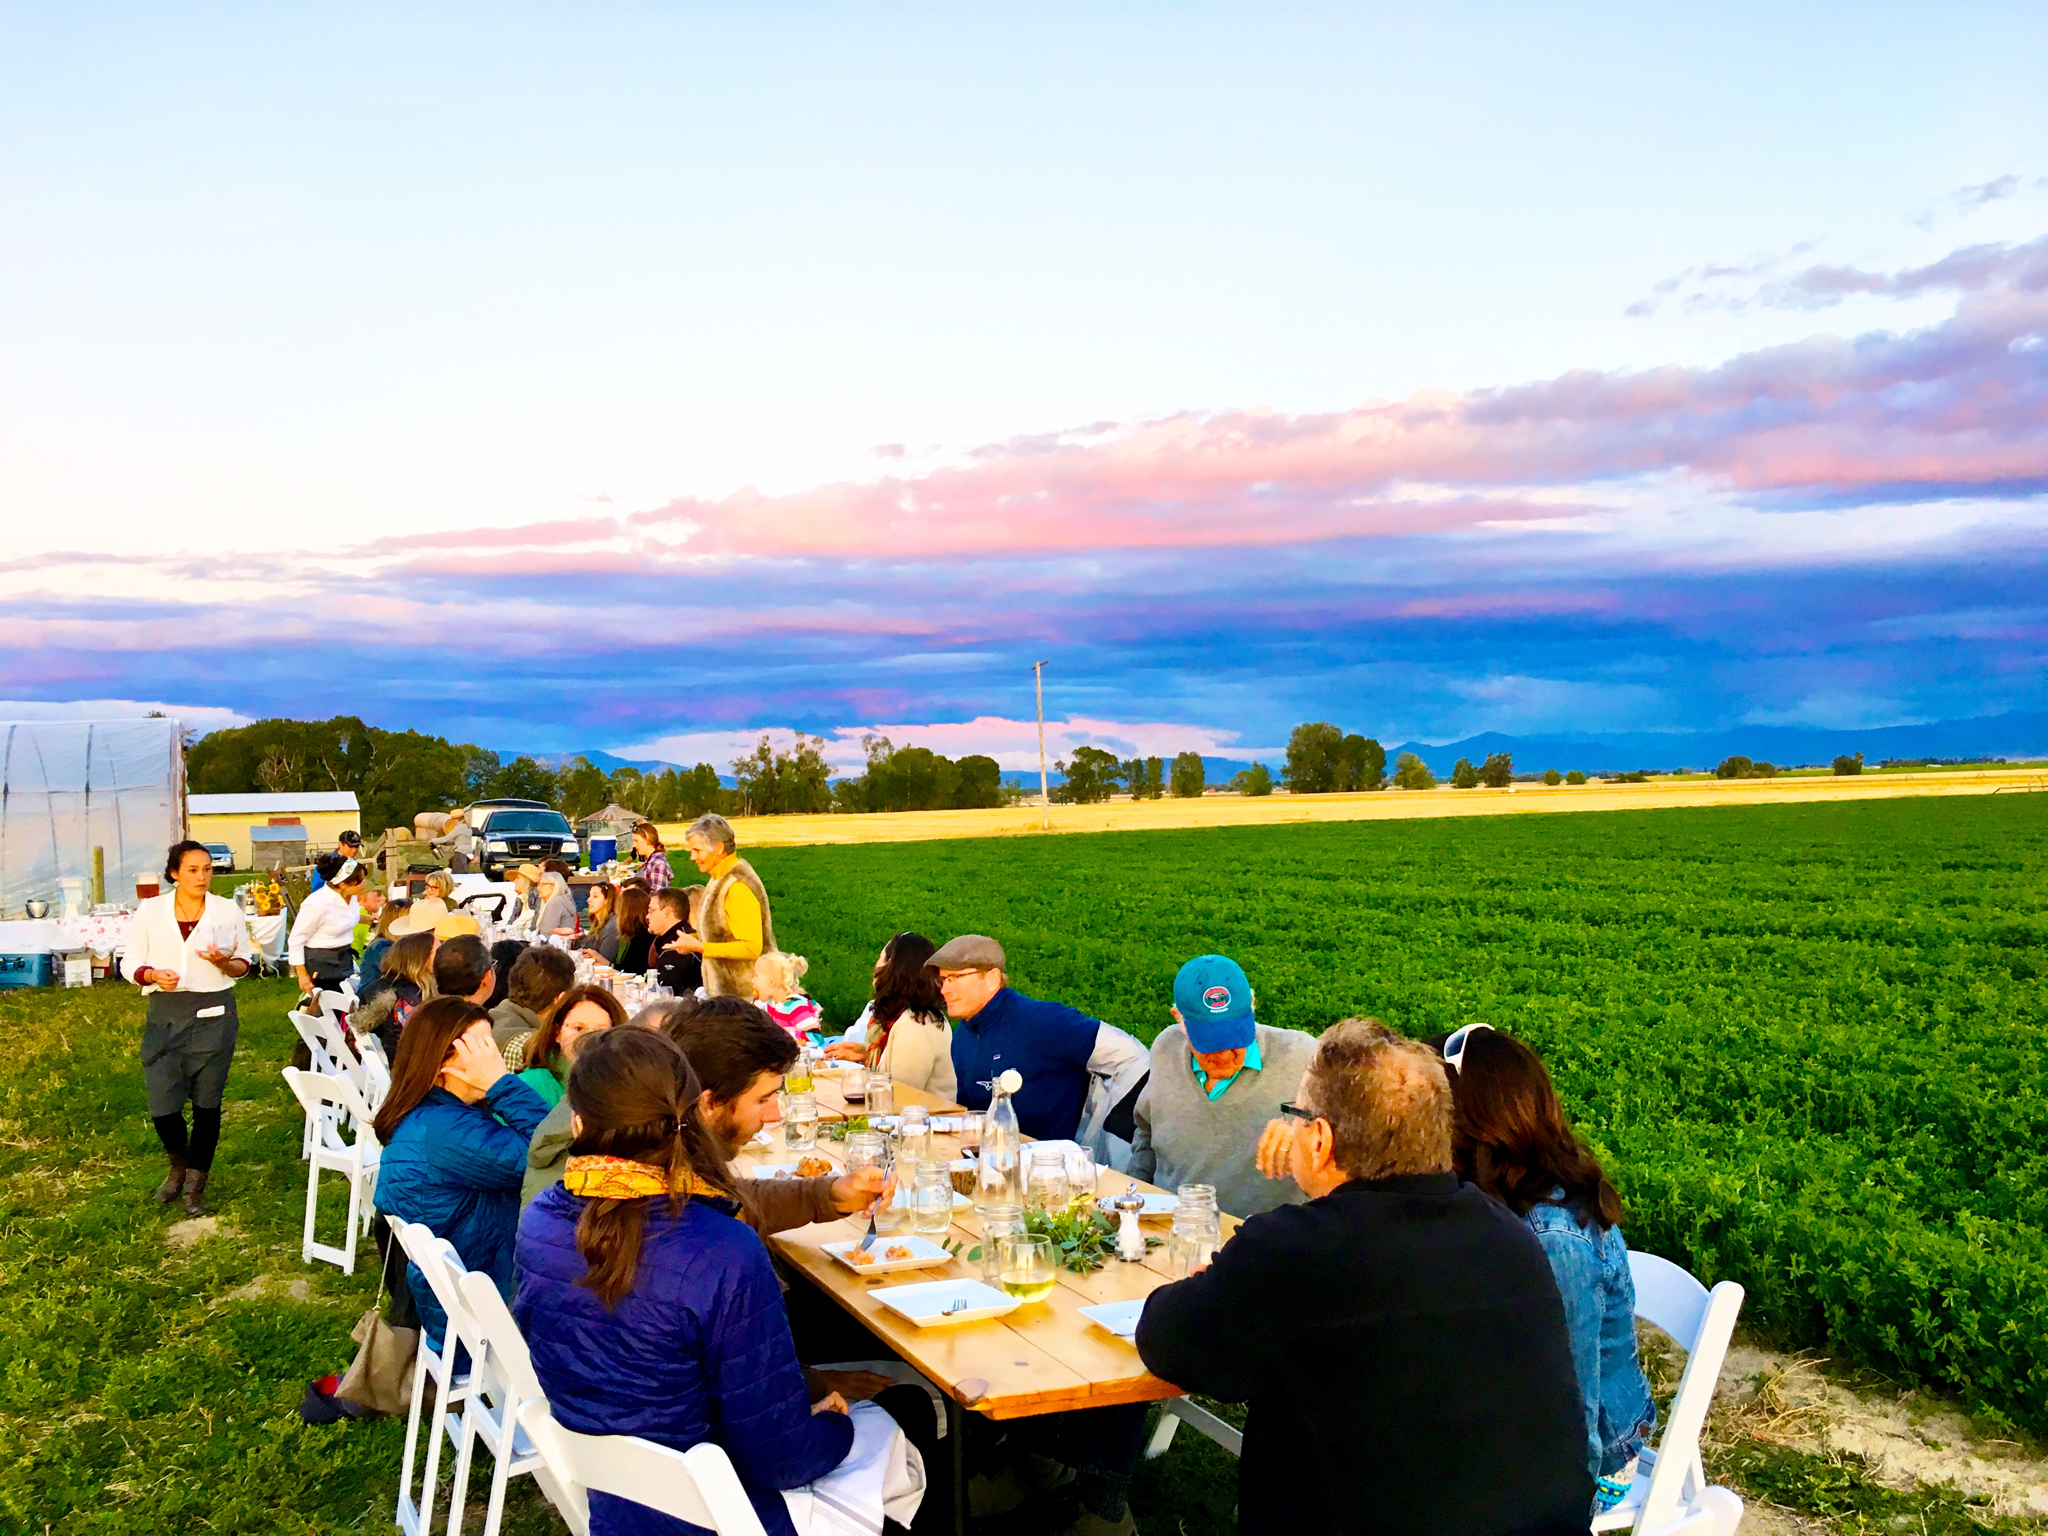 Farm to Table dinner by Chef Melissa Harrison during summer in Bozeman, MT